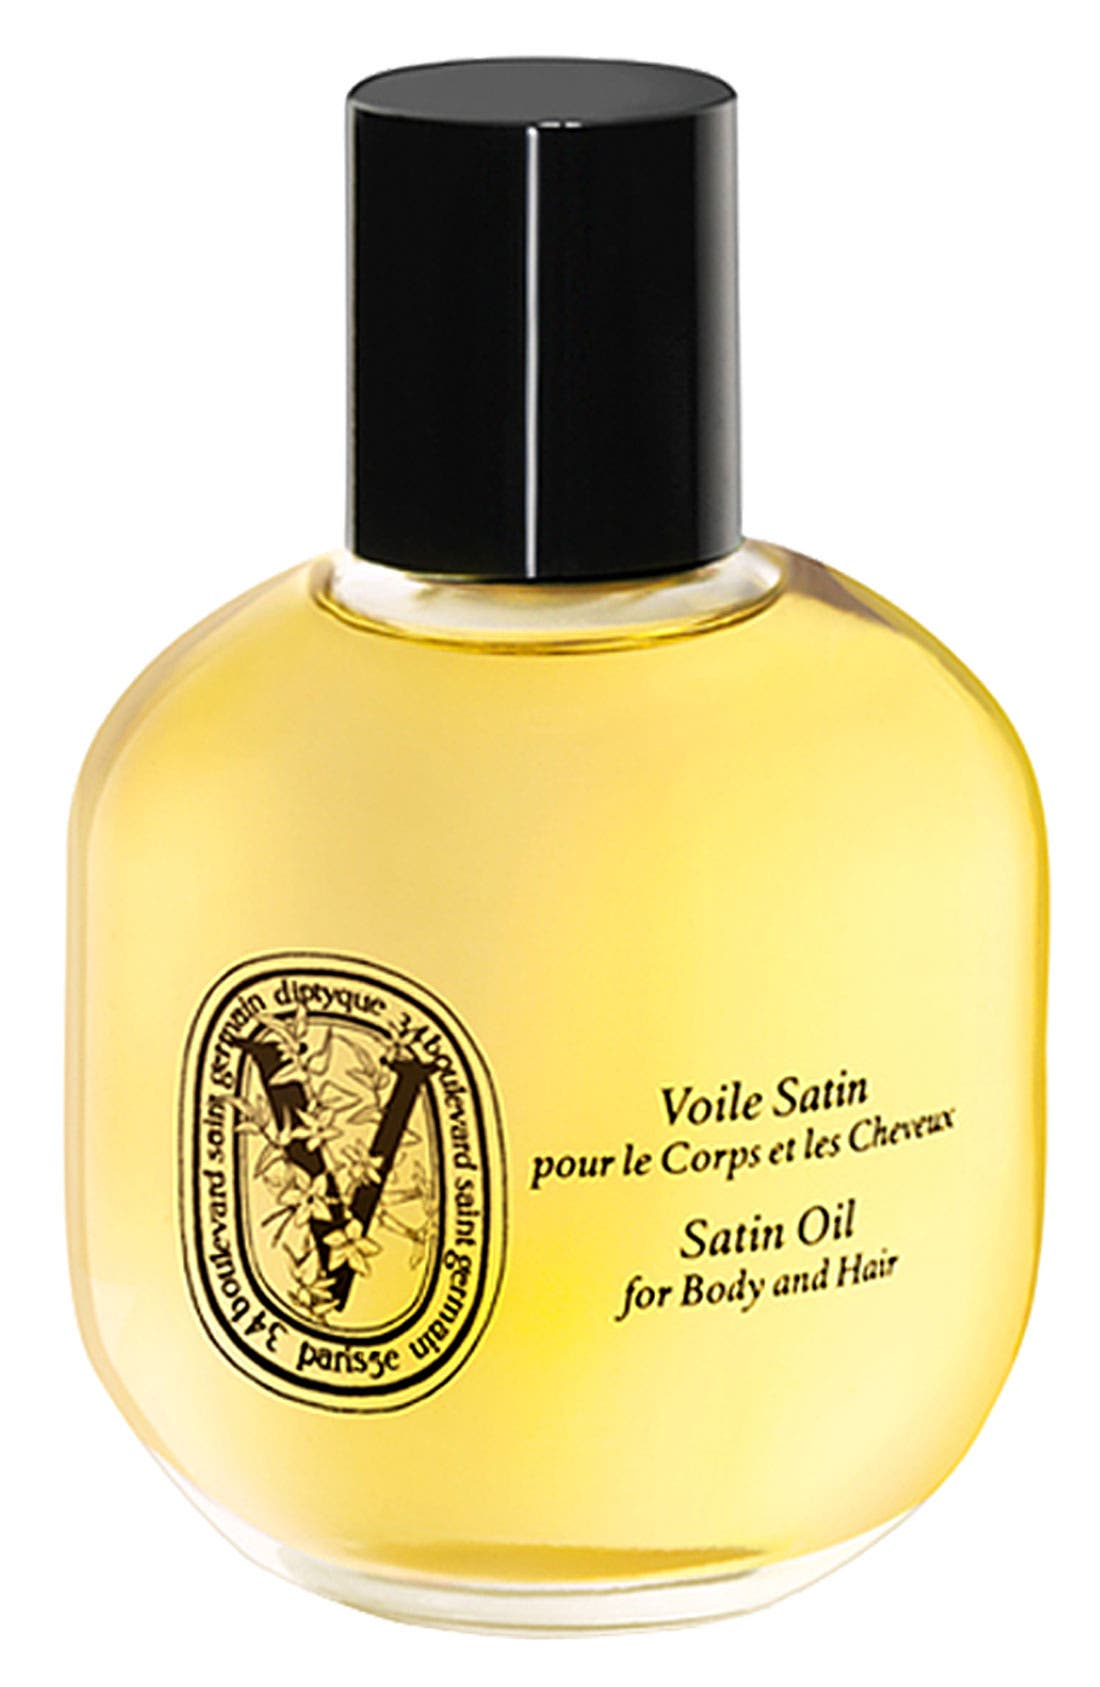 diptyque Satin Oil Spray for Body and Hair